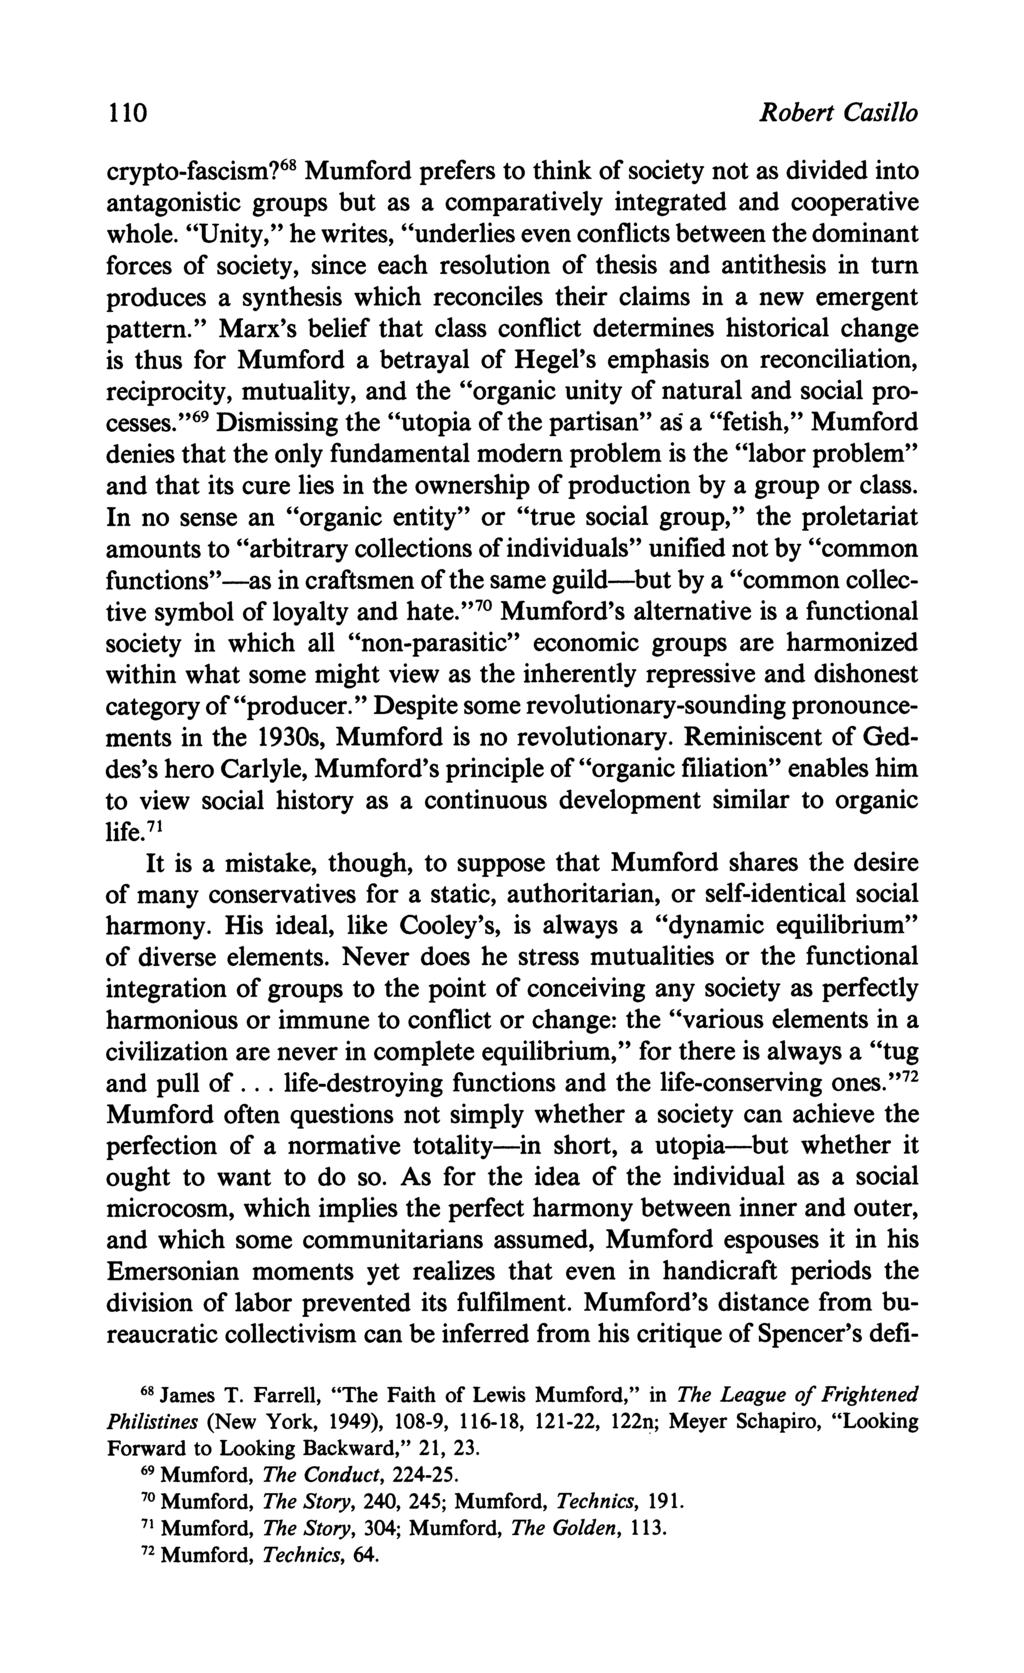 hegel thesis antithesis synthesis The triad thesis, antithesis, synthesis ( german : these, antithese, synthese originally: thesis, antithesis, synthesis) is often used to describe the thought of.